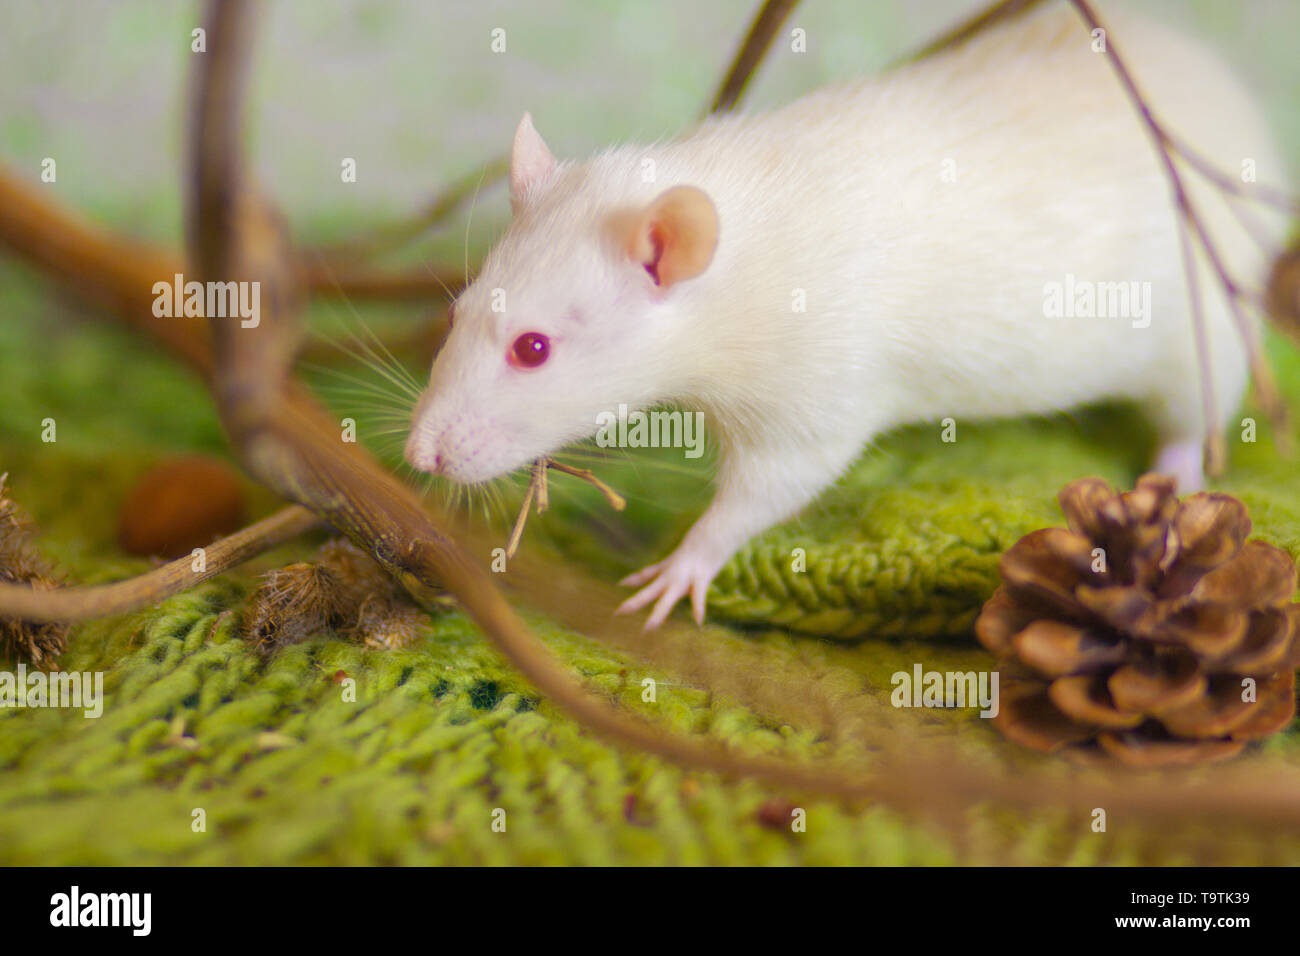 Beautiful mouse on the grass. White rat on a green background. Decorative Pets. Rodent in the woods. - Stock Image